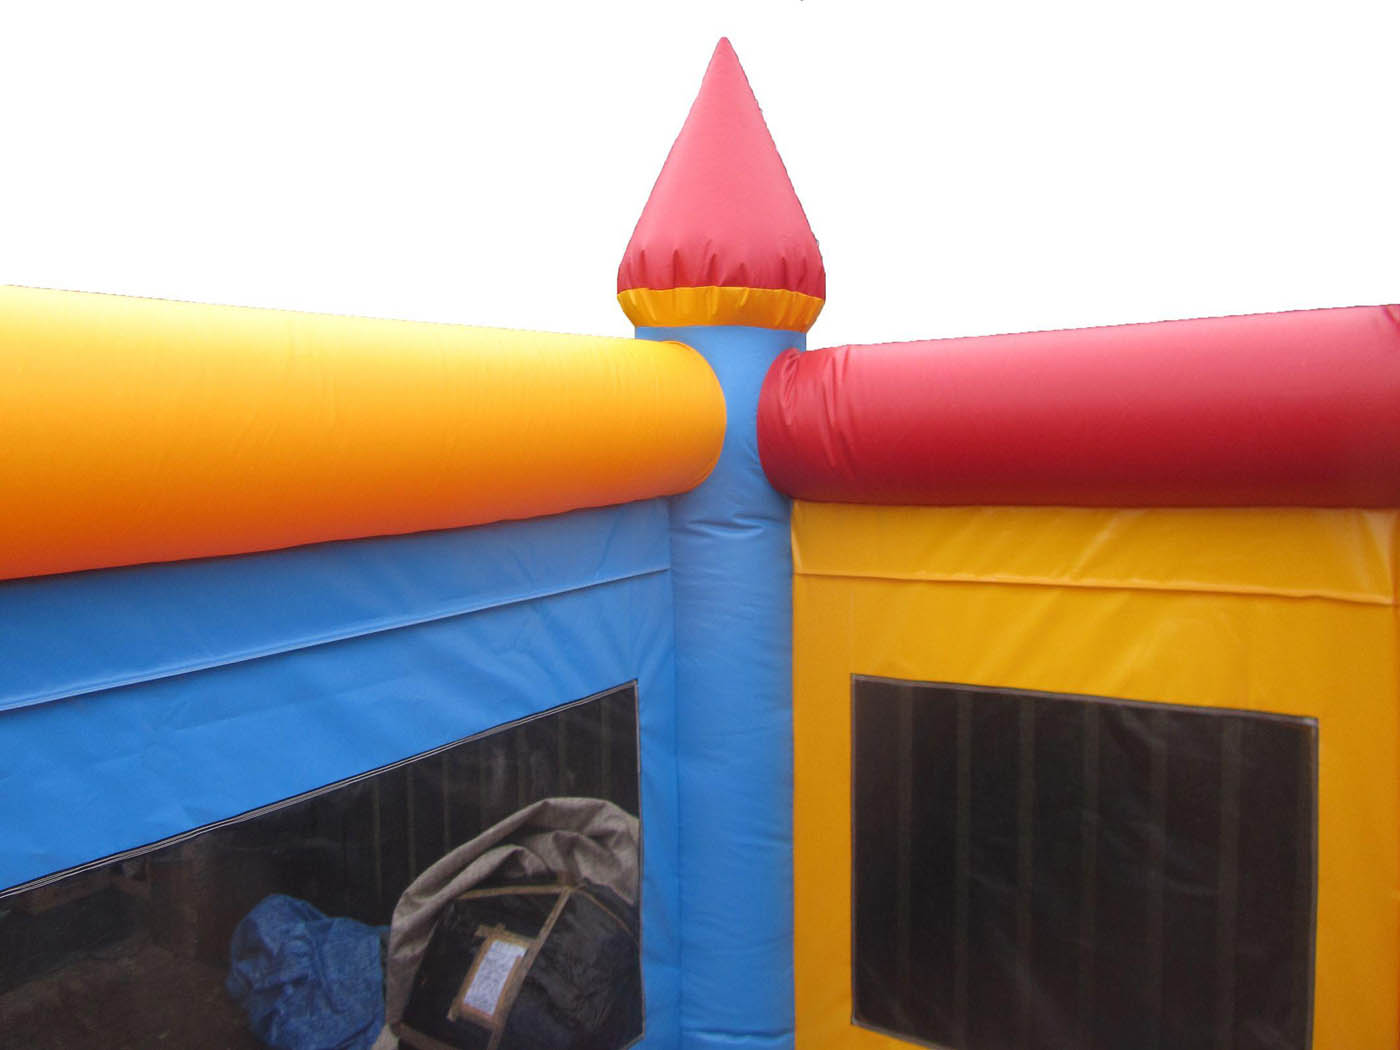 Commercial Bouncy Castle with Netted Sides